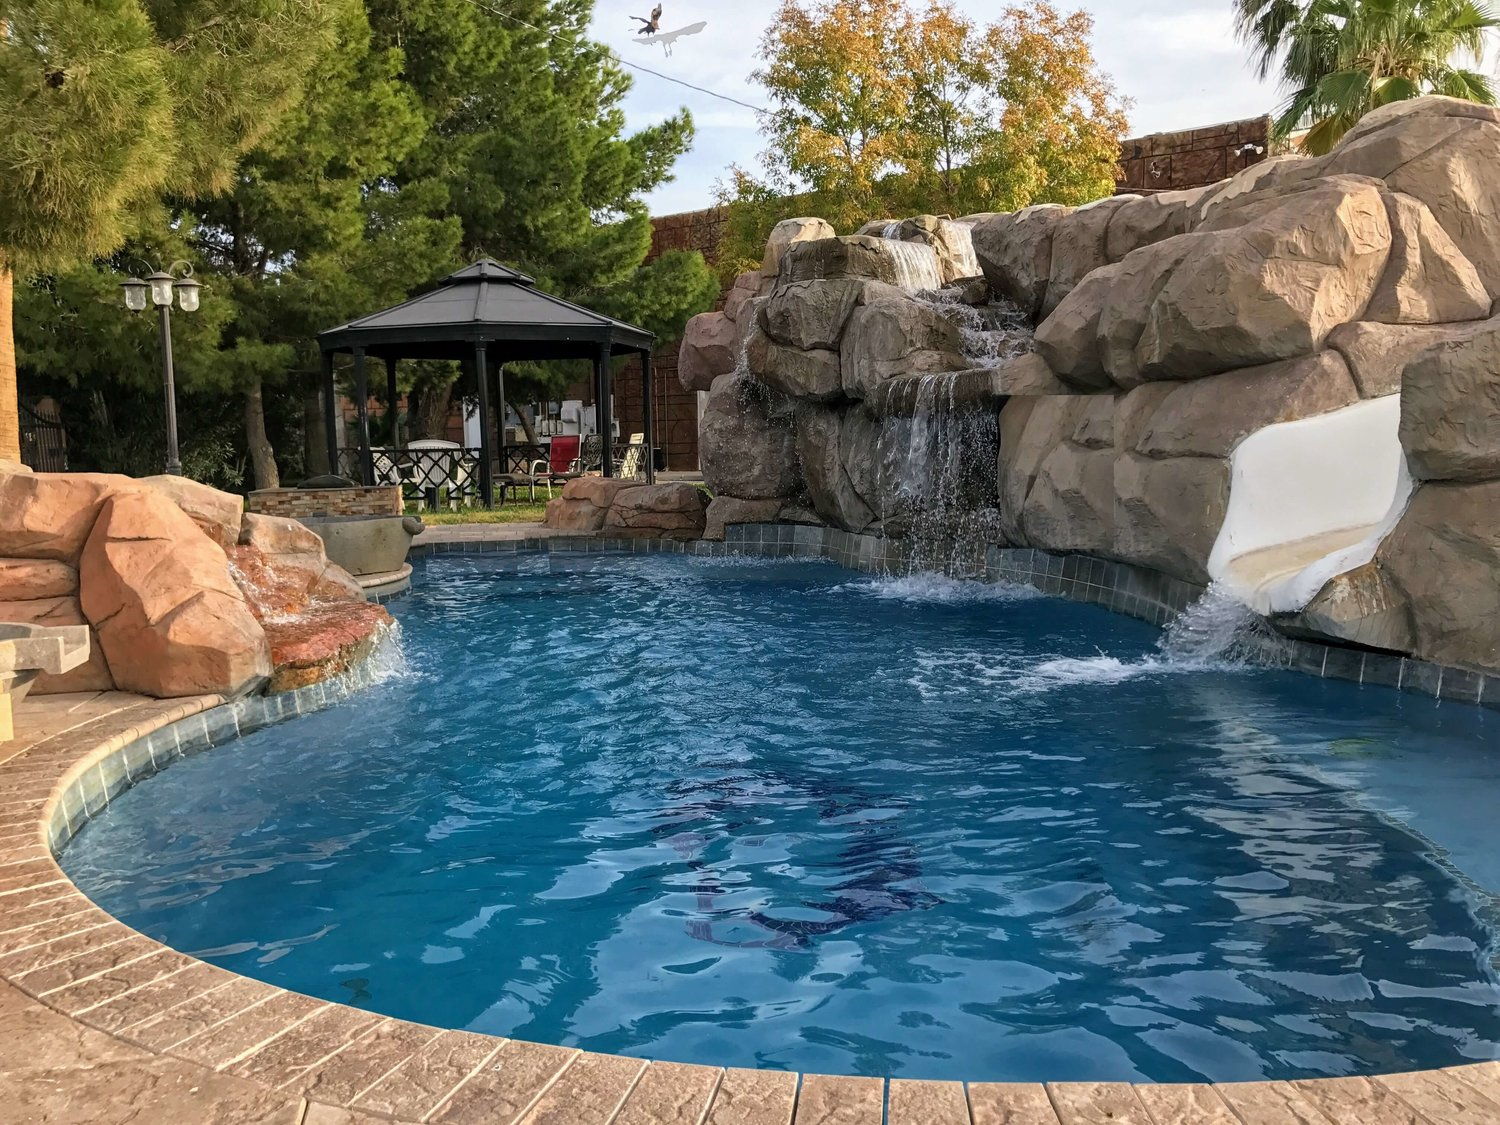 Renaissance Pools Las Vegas Pool Installation Company